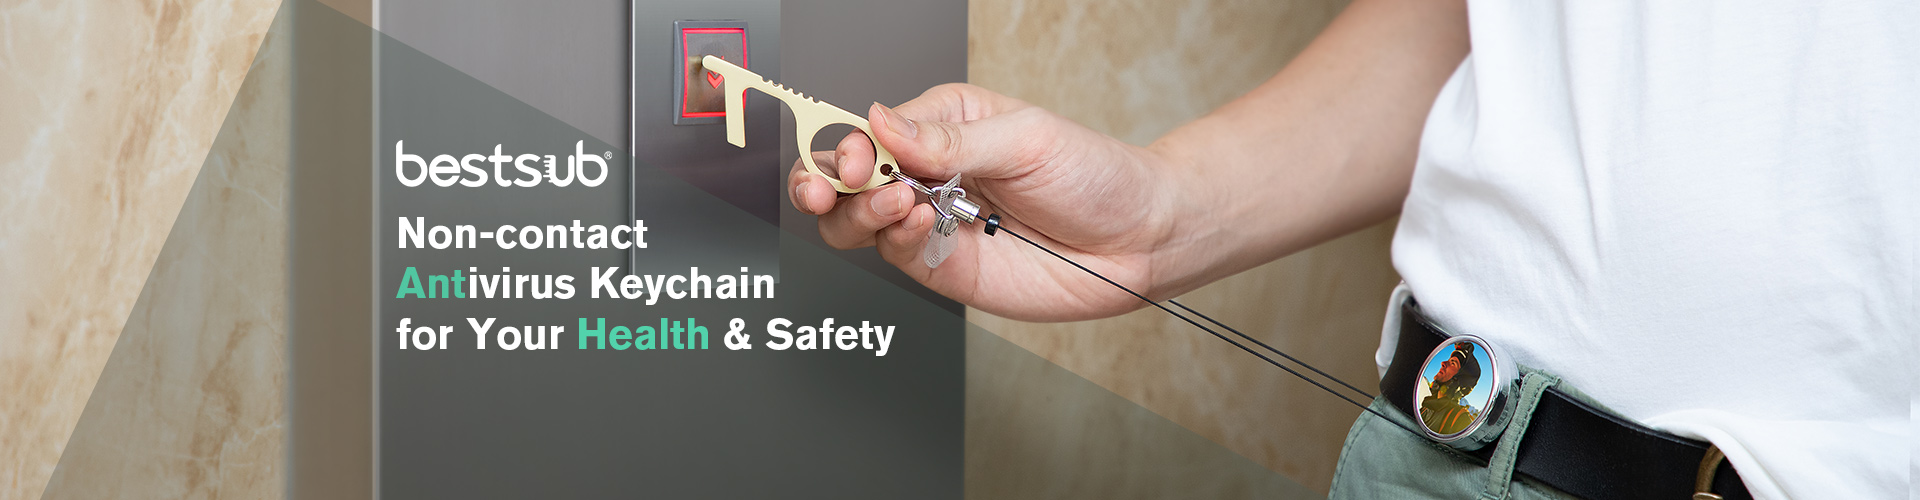 2020-5-8_Non-contact_Antivirus_Keychain_for_Your_Health_Safety_new_web